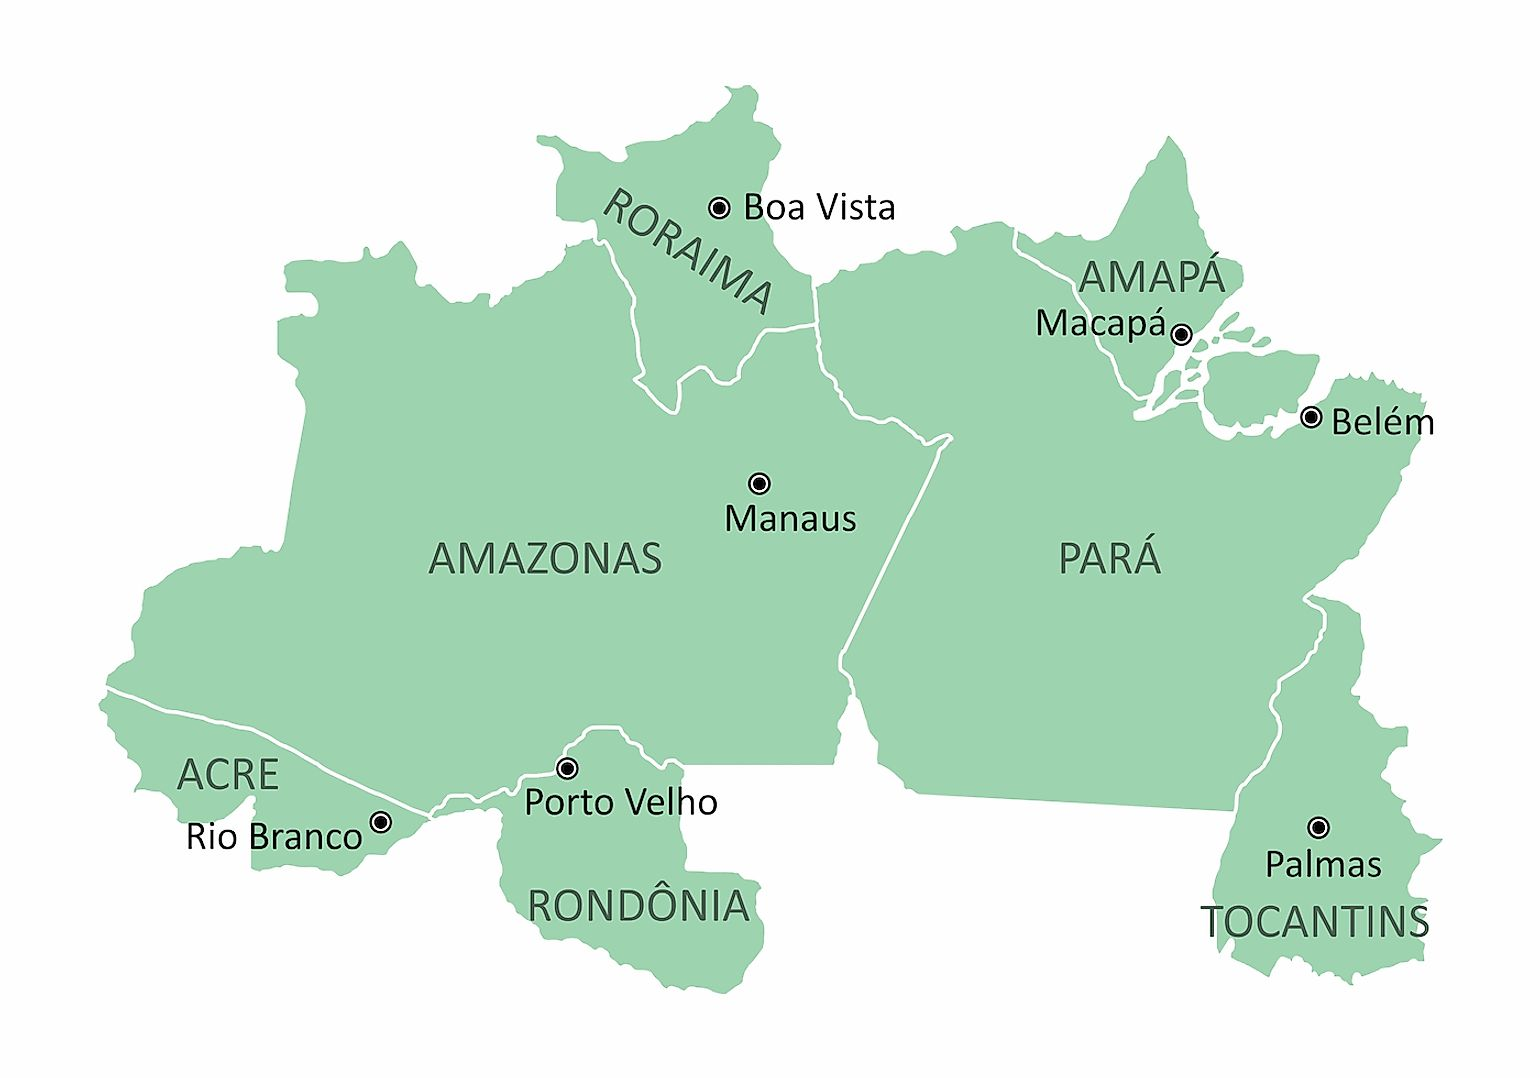 Map of the Brazil north region. Image credit: Luisrftc/Shutterstock.com